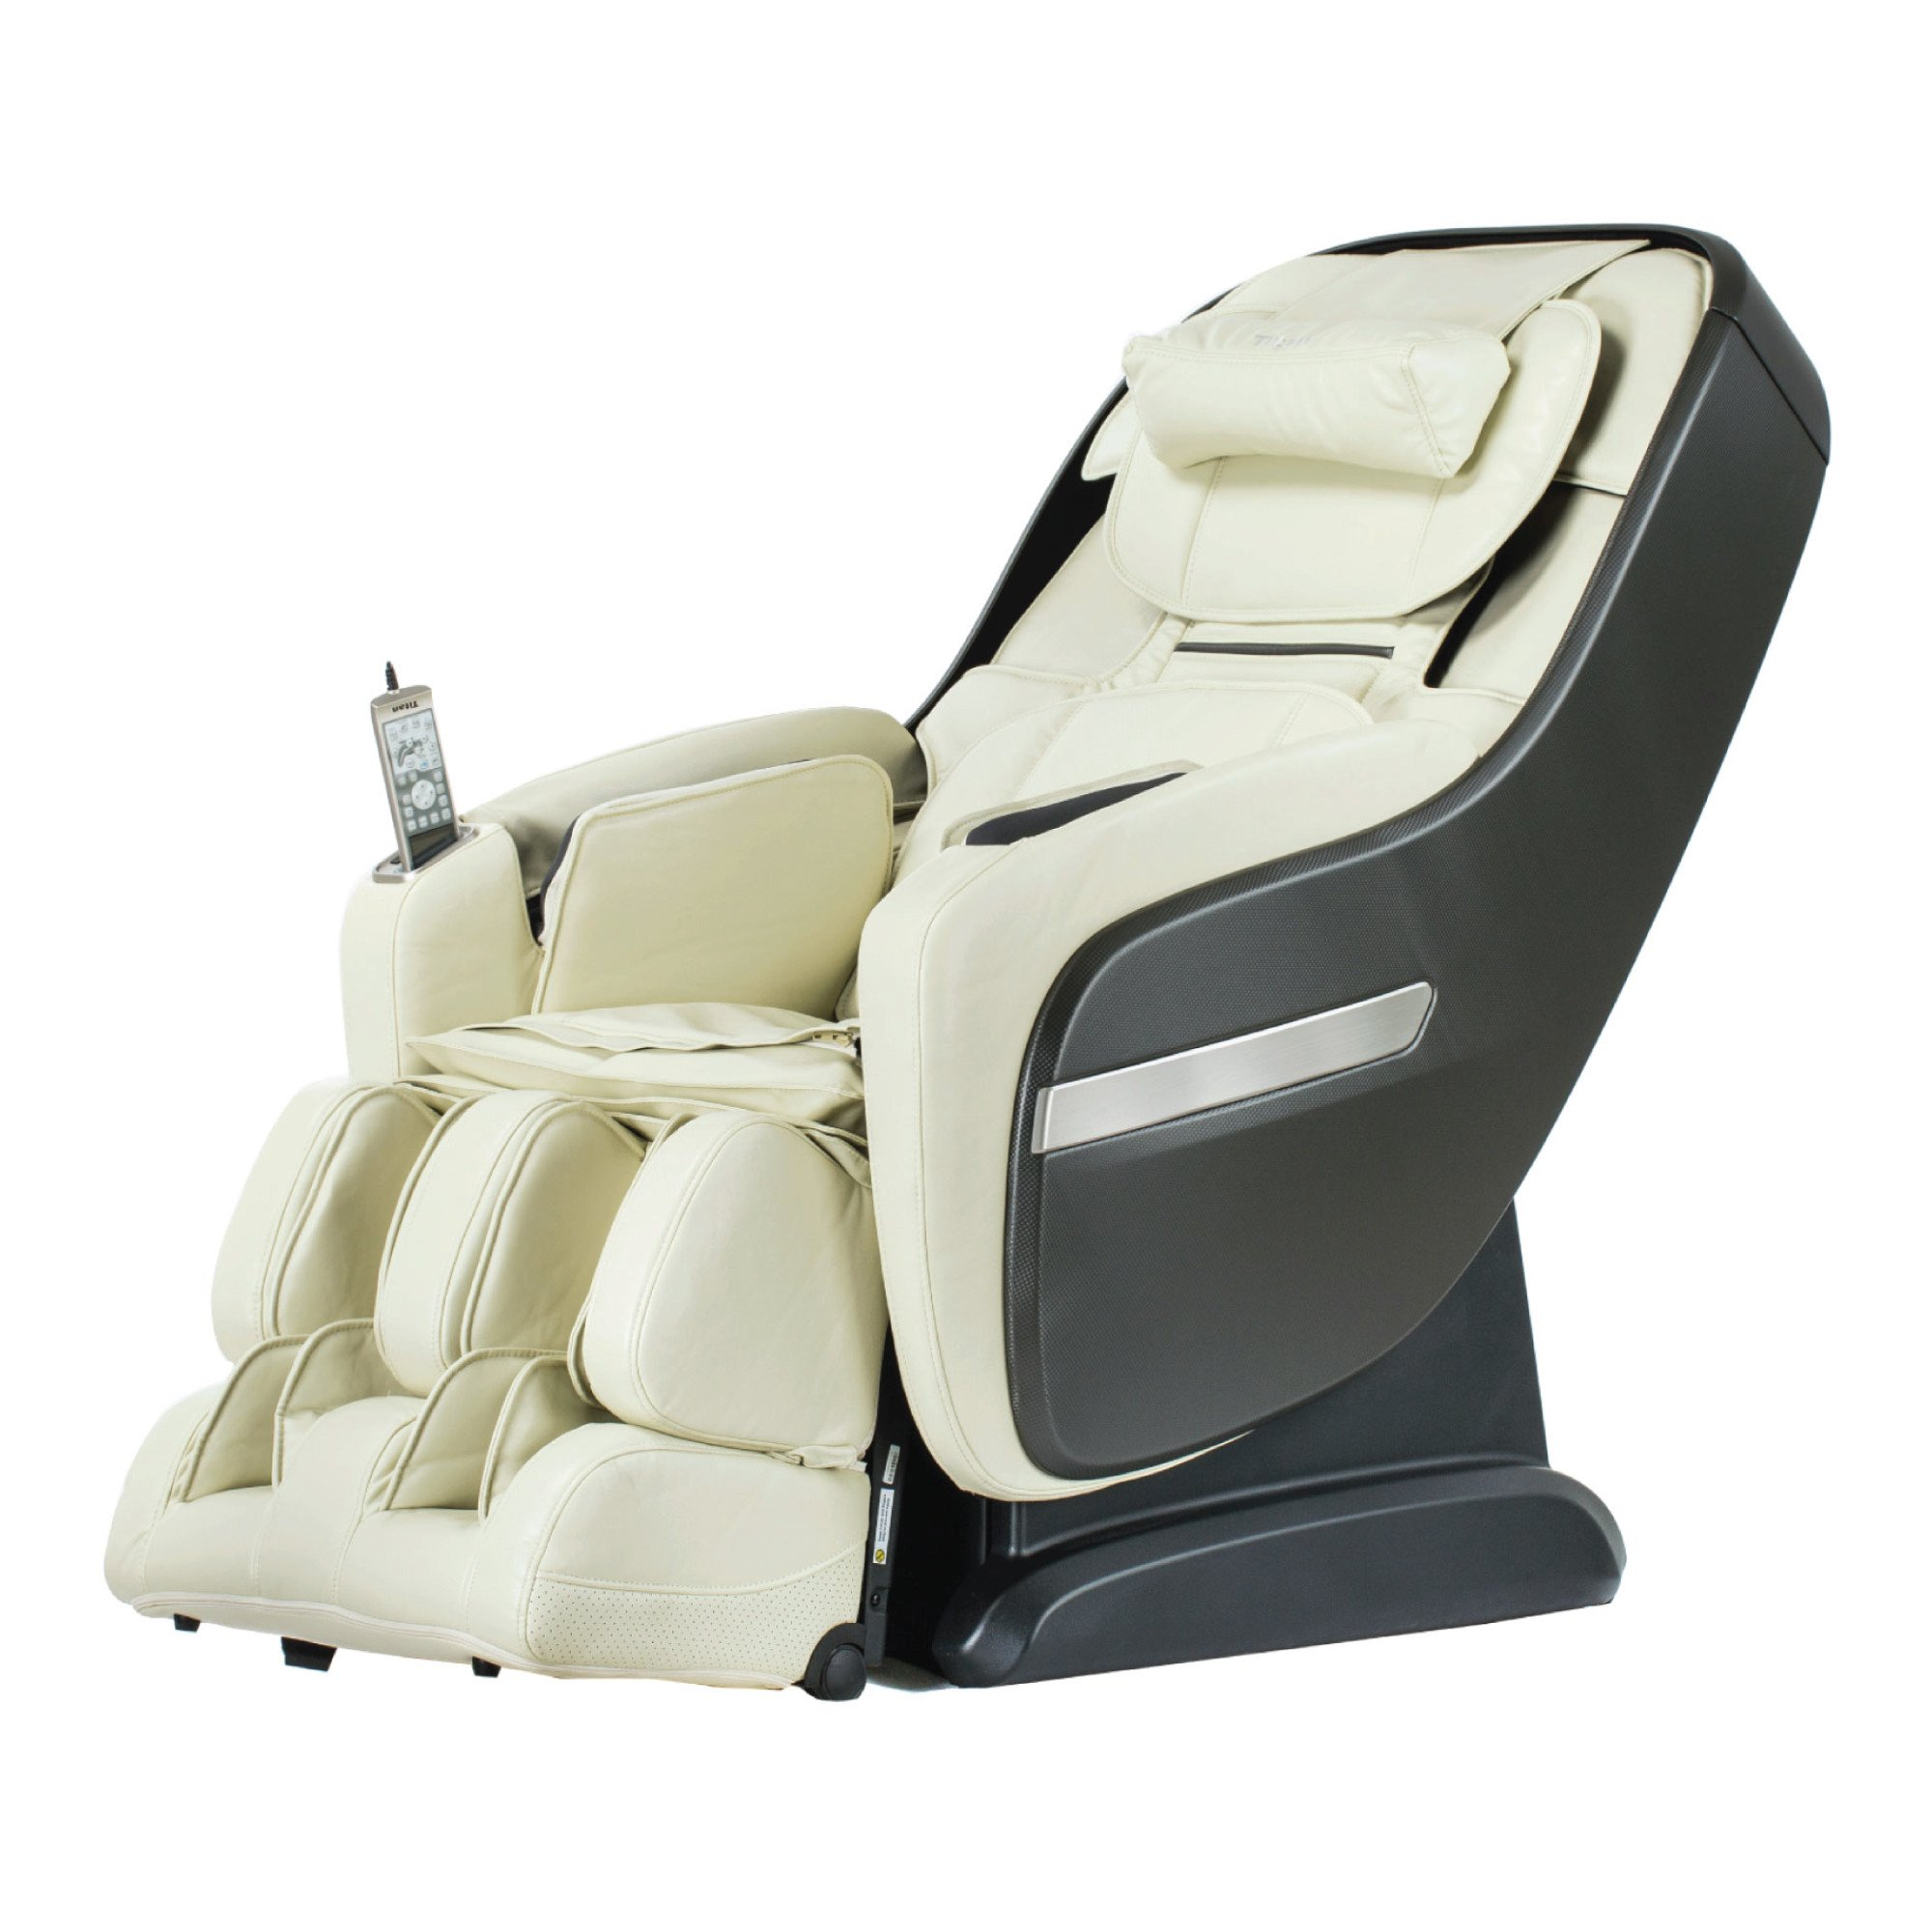 Titan Alpine Massage Chair - Cream - Front Angle View